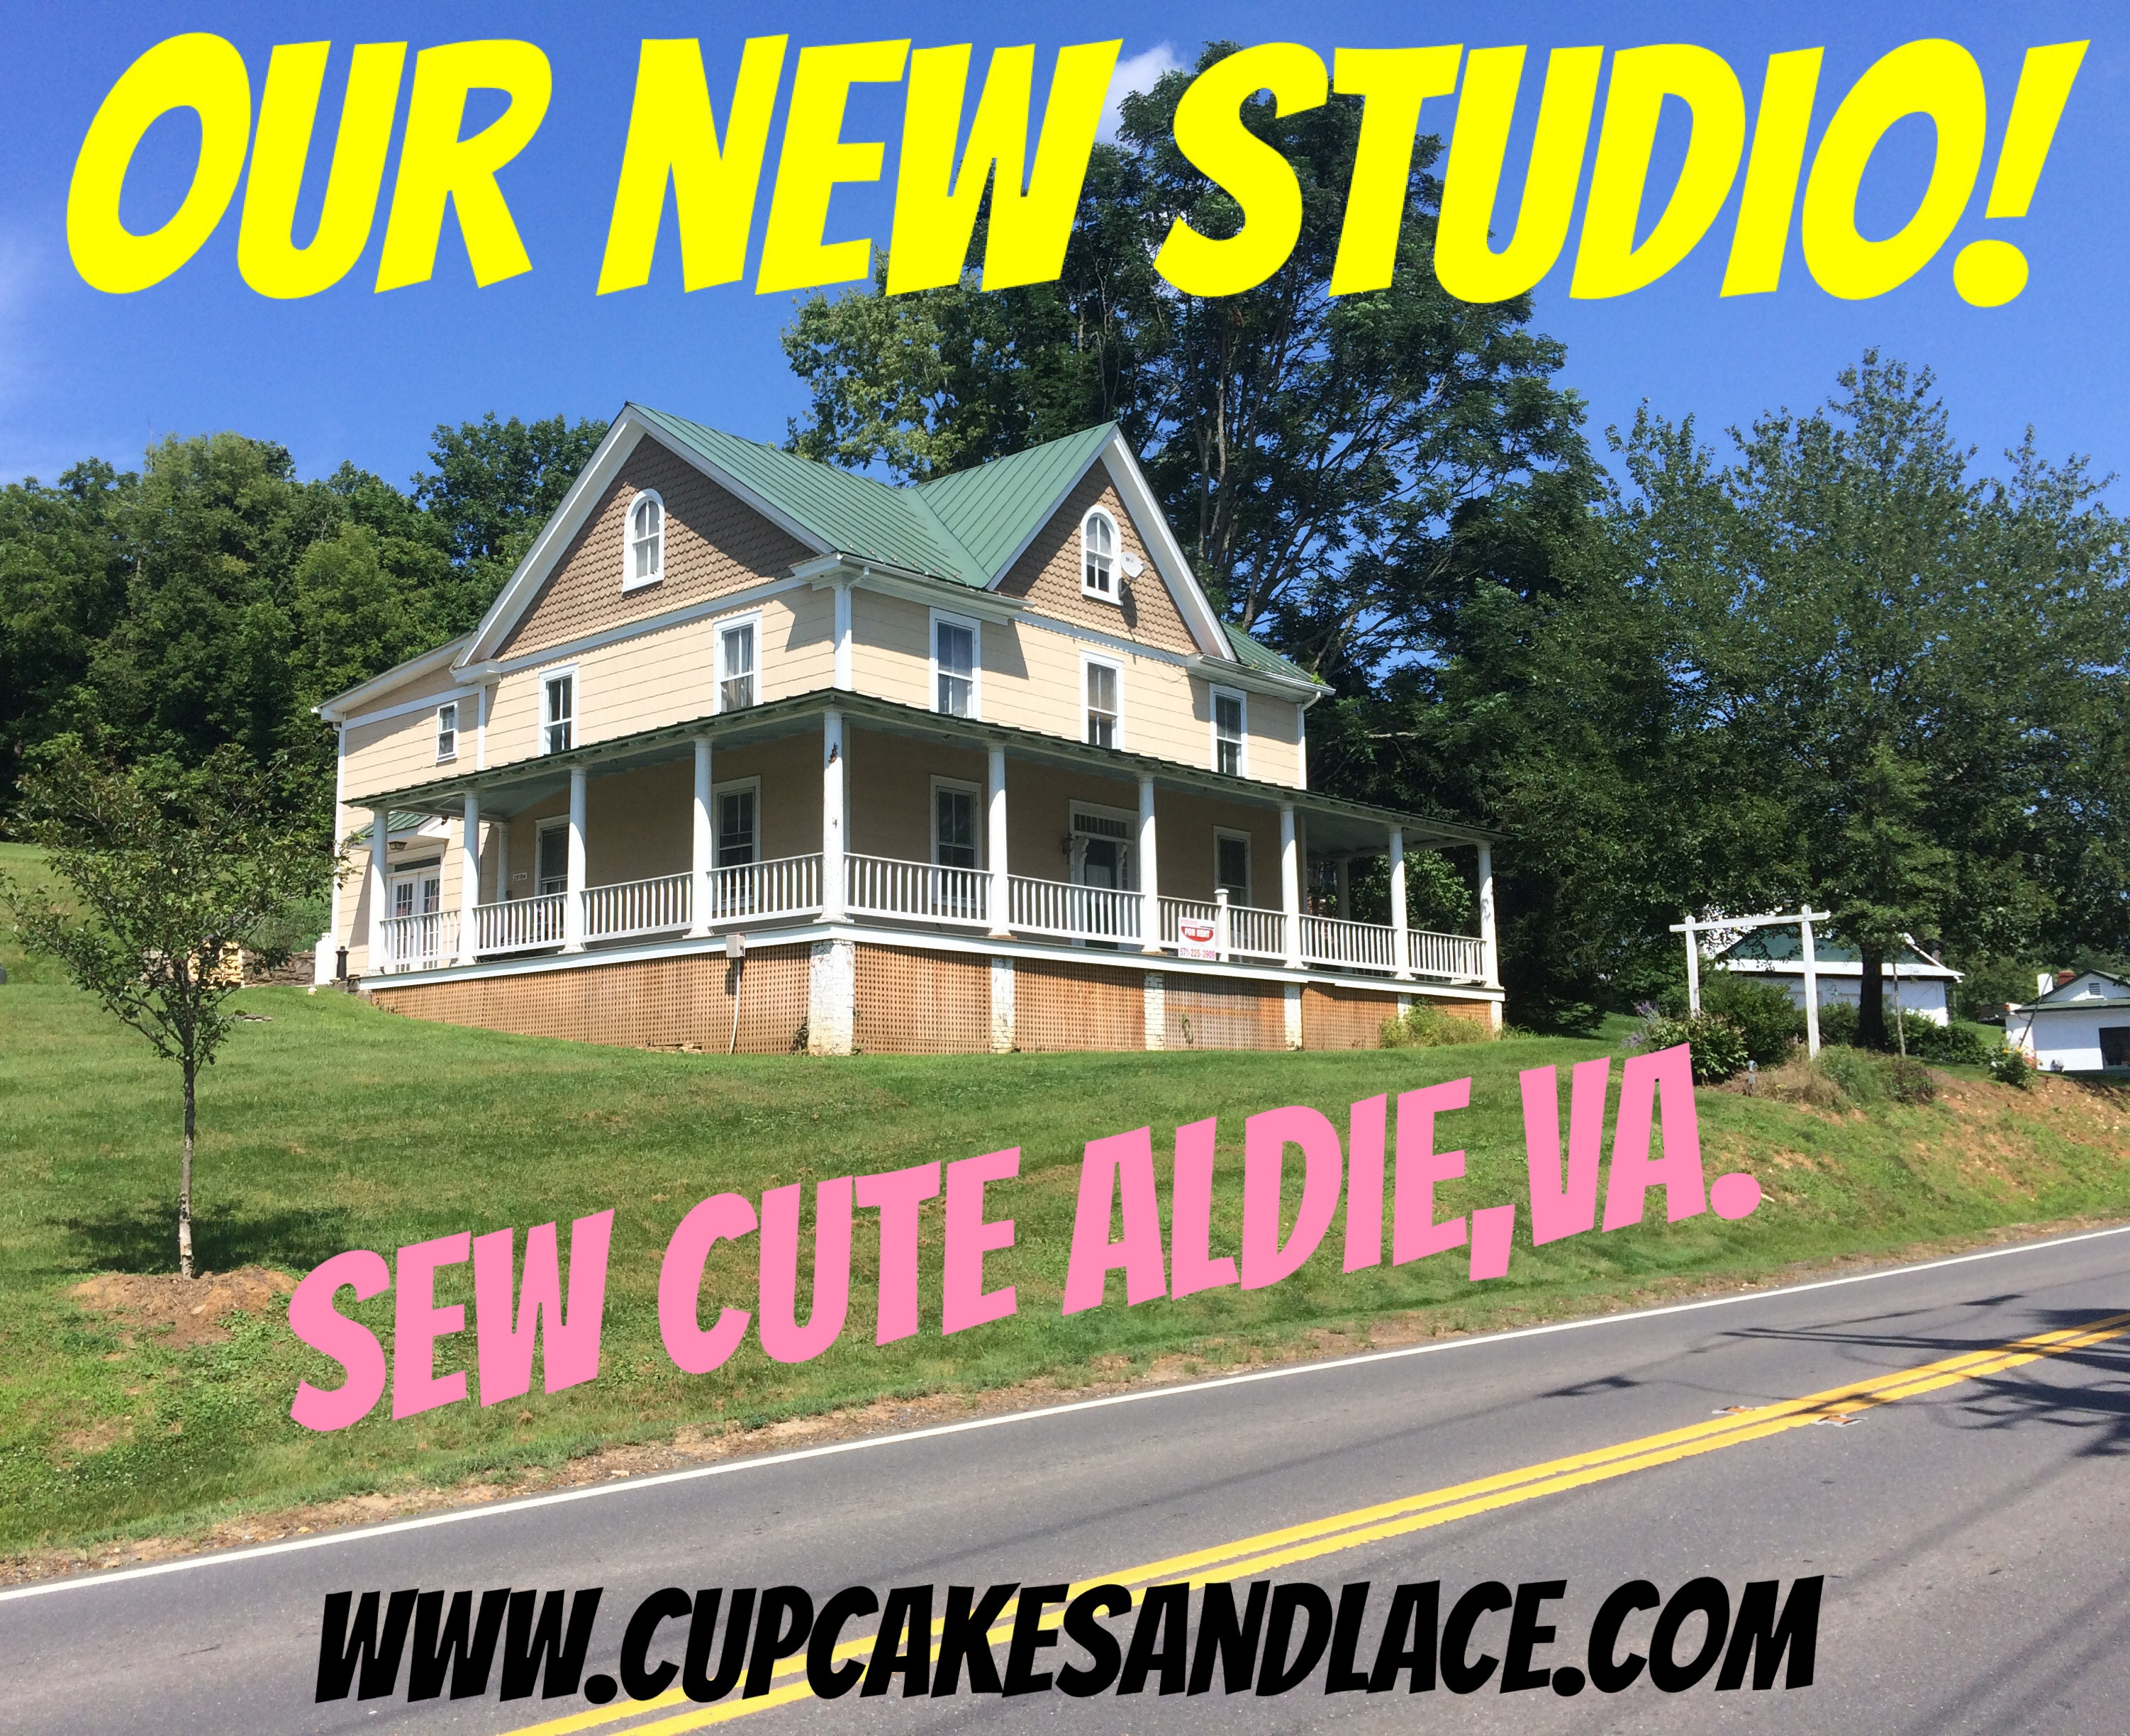 We Are Moving Kids Sewing Studio In Historic Aldie Virginia Crafting Girl Scout Classes Camps Birthday Parties Northern